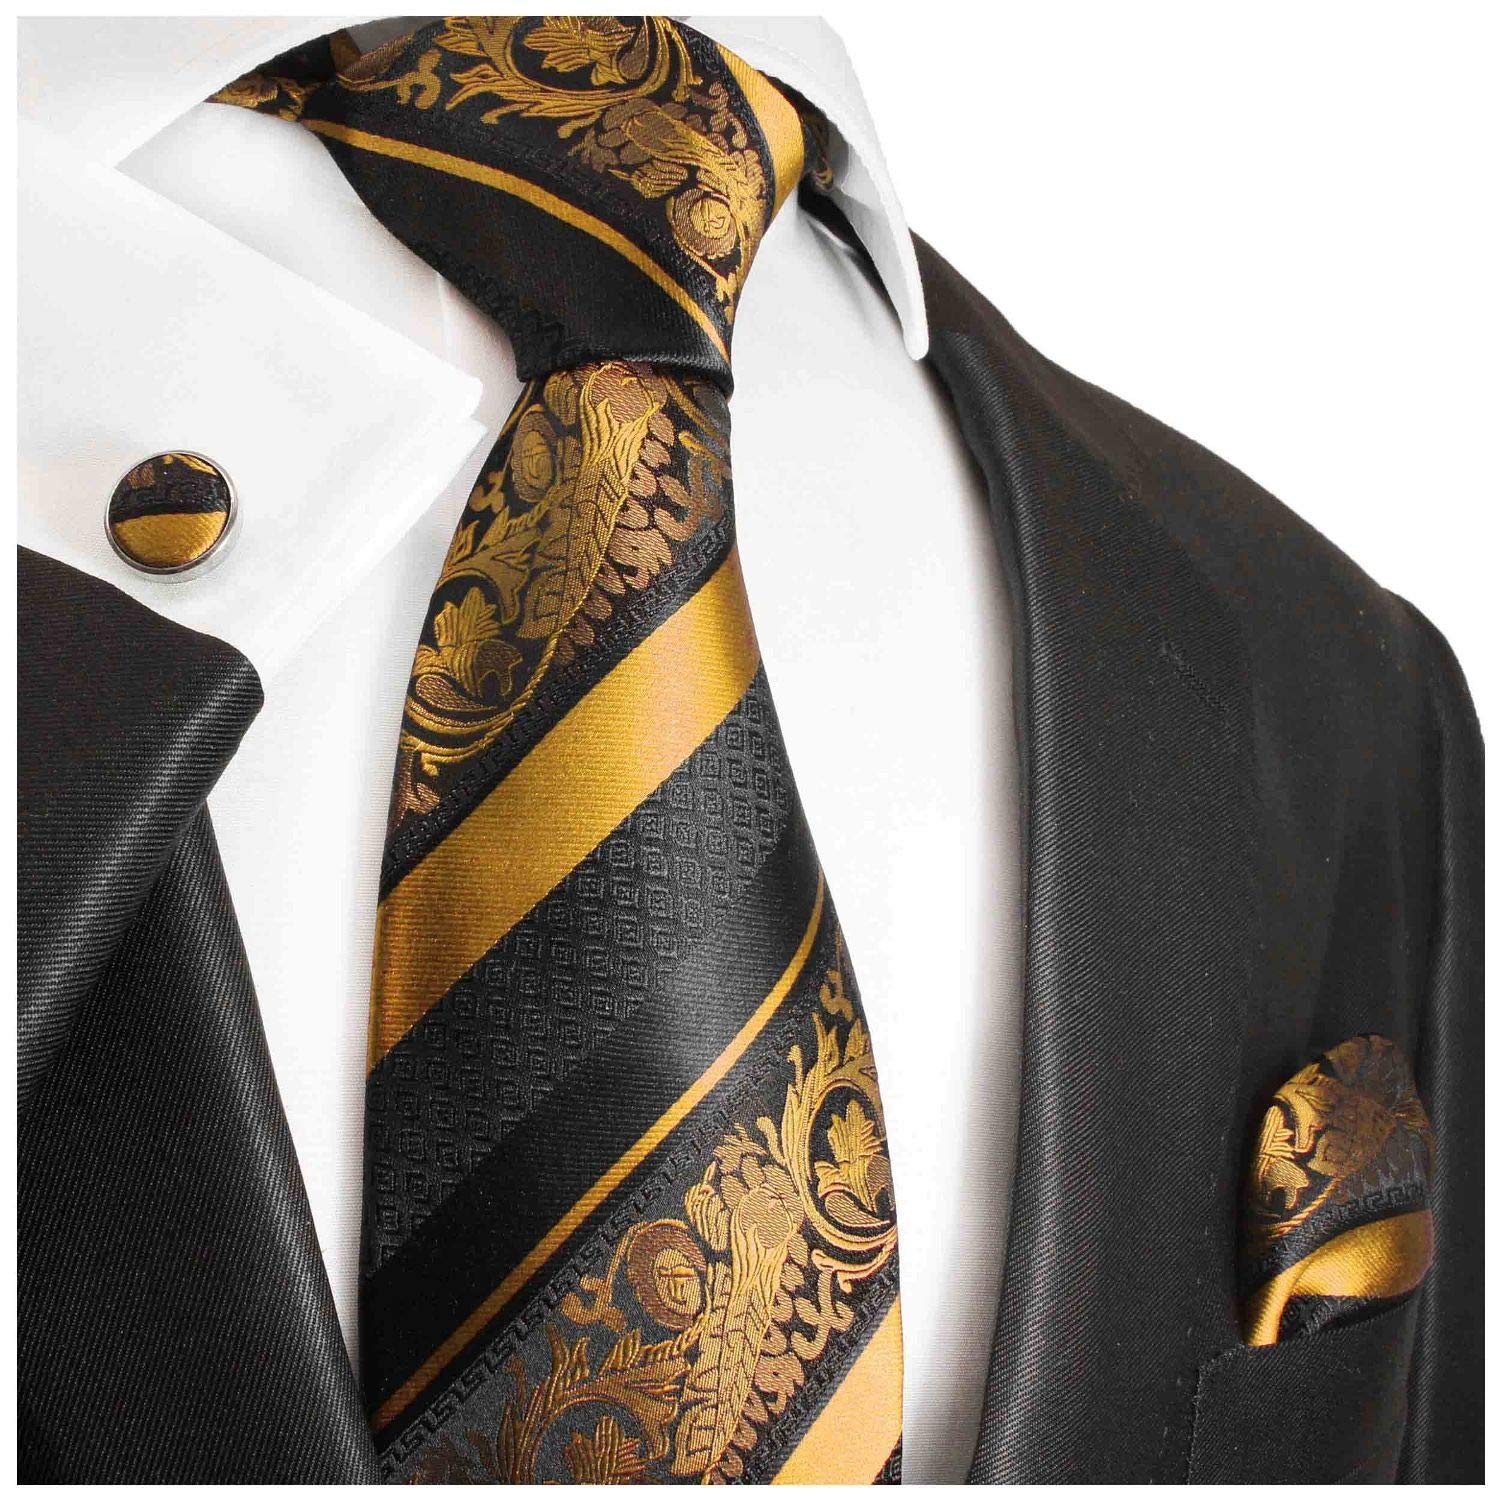 Gold and Black Silk Tie with Pocket Square and Cufflinks